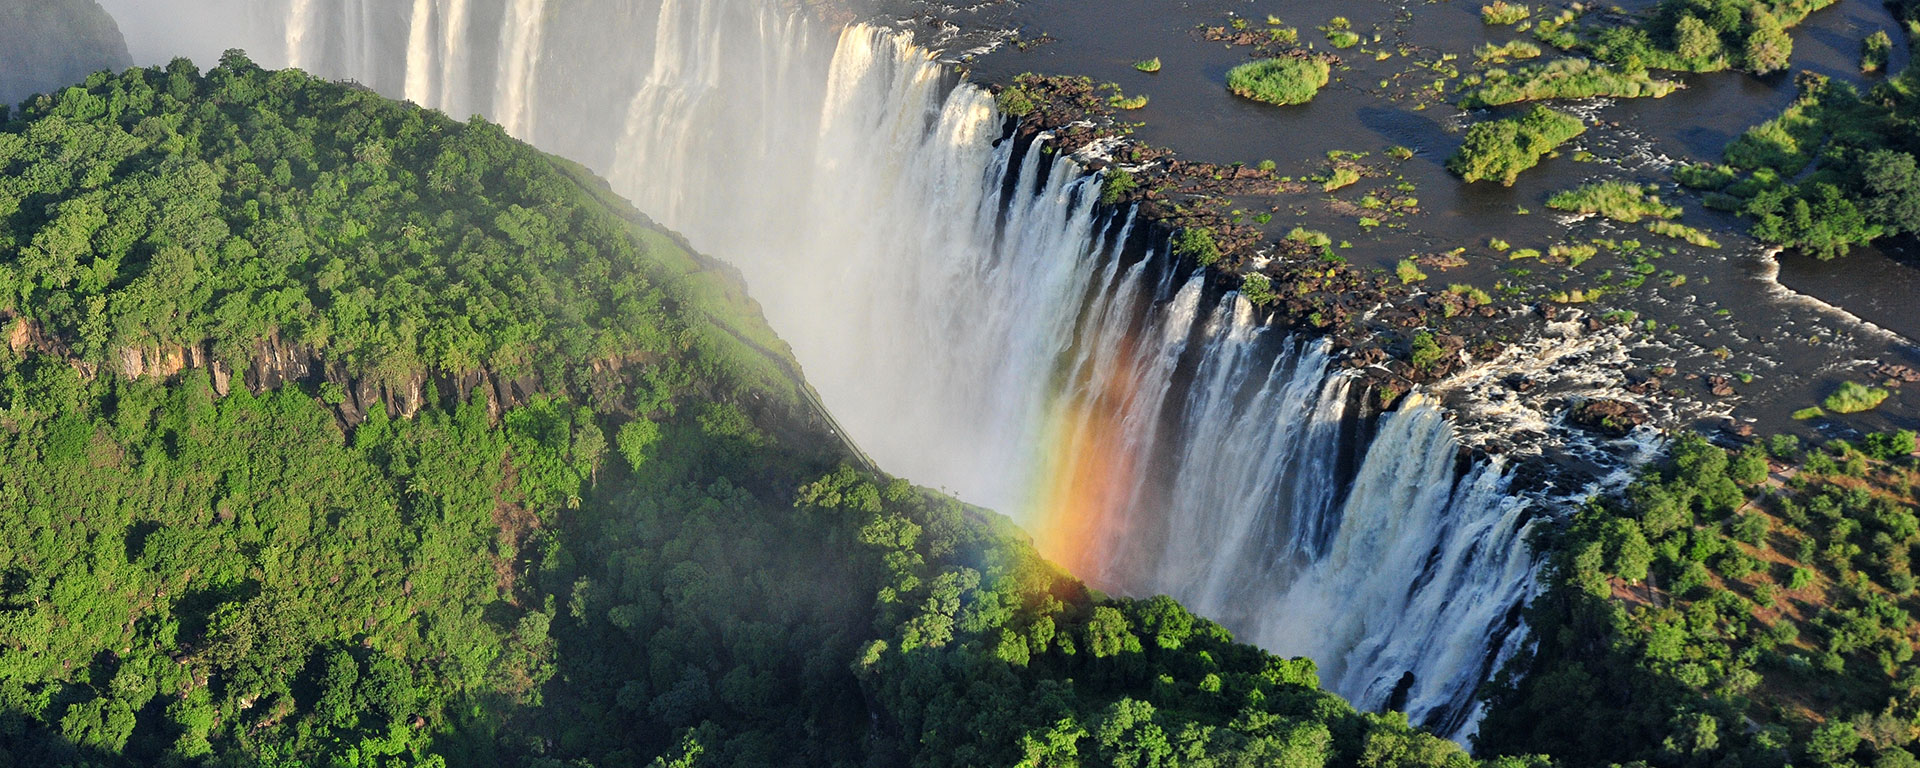 Best Victoria Falls Zambia Guide for 2019 | Go2Africa com